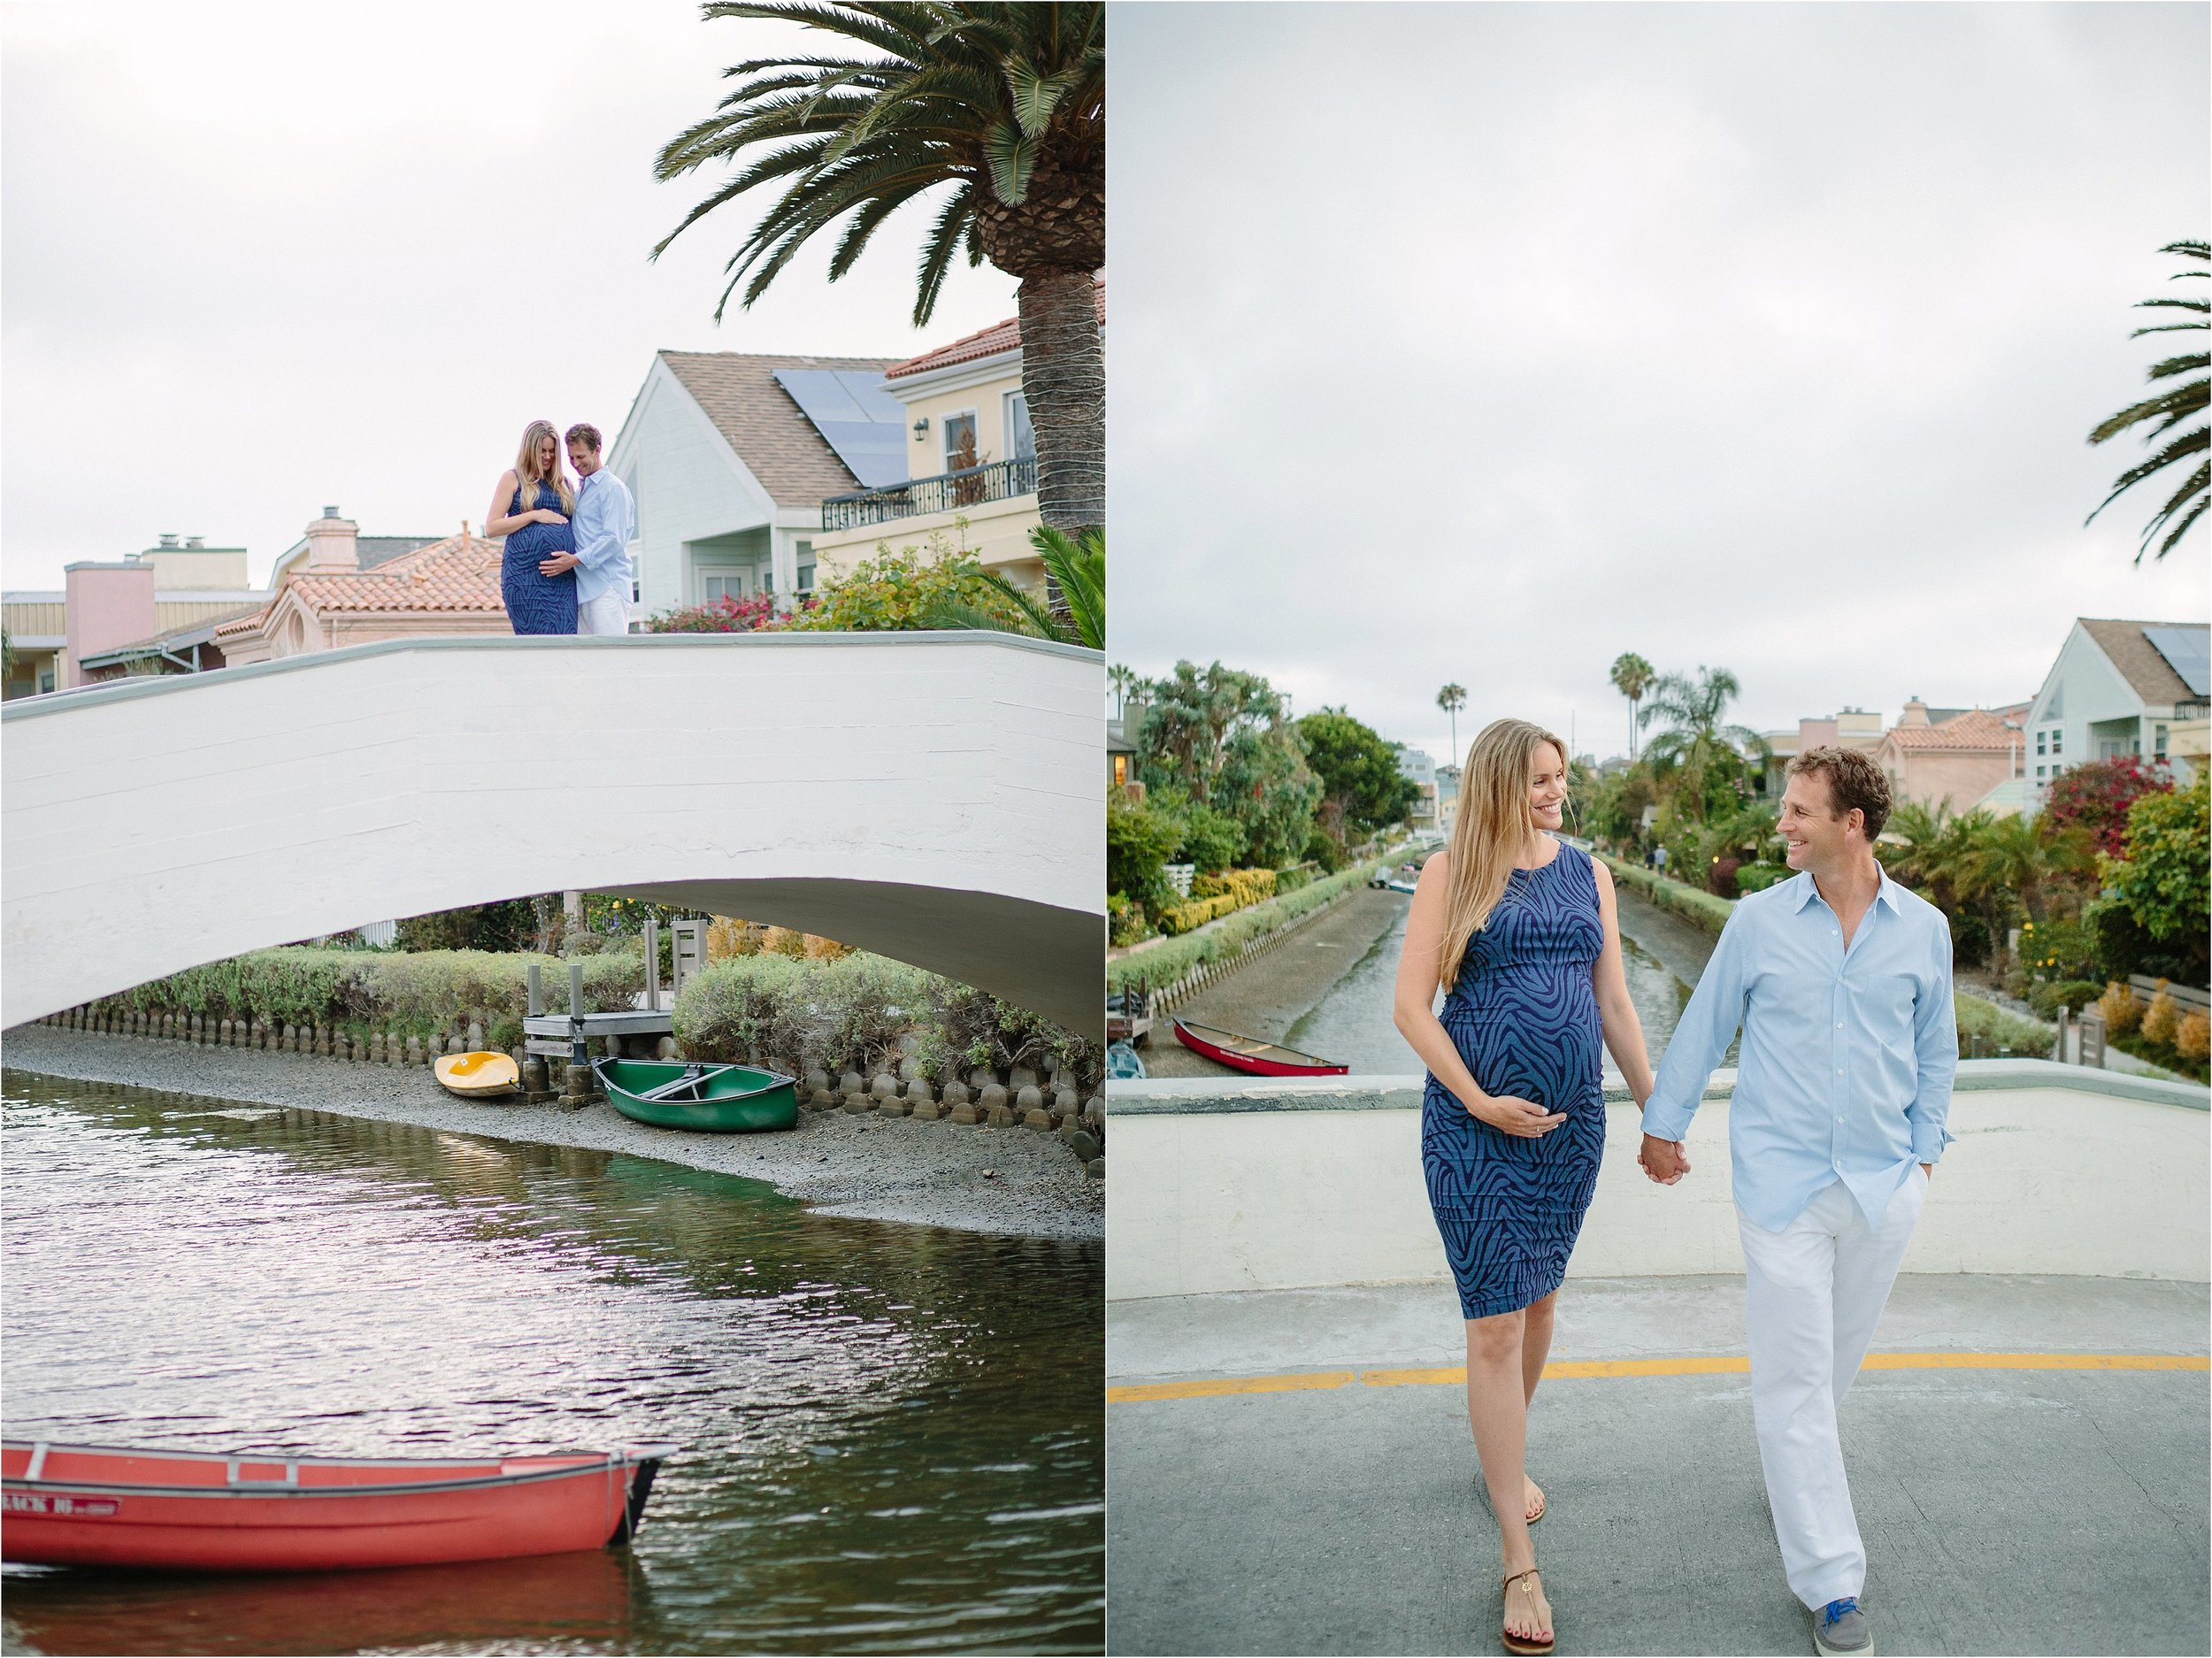 Venice Canals Natural Light Maternity Photo